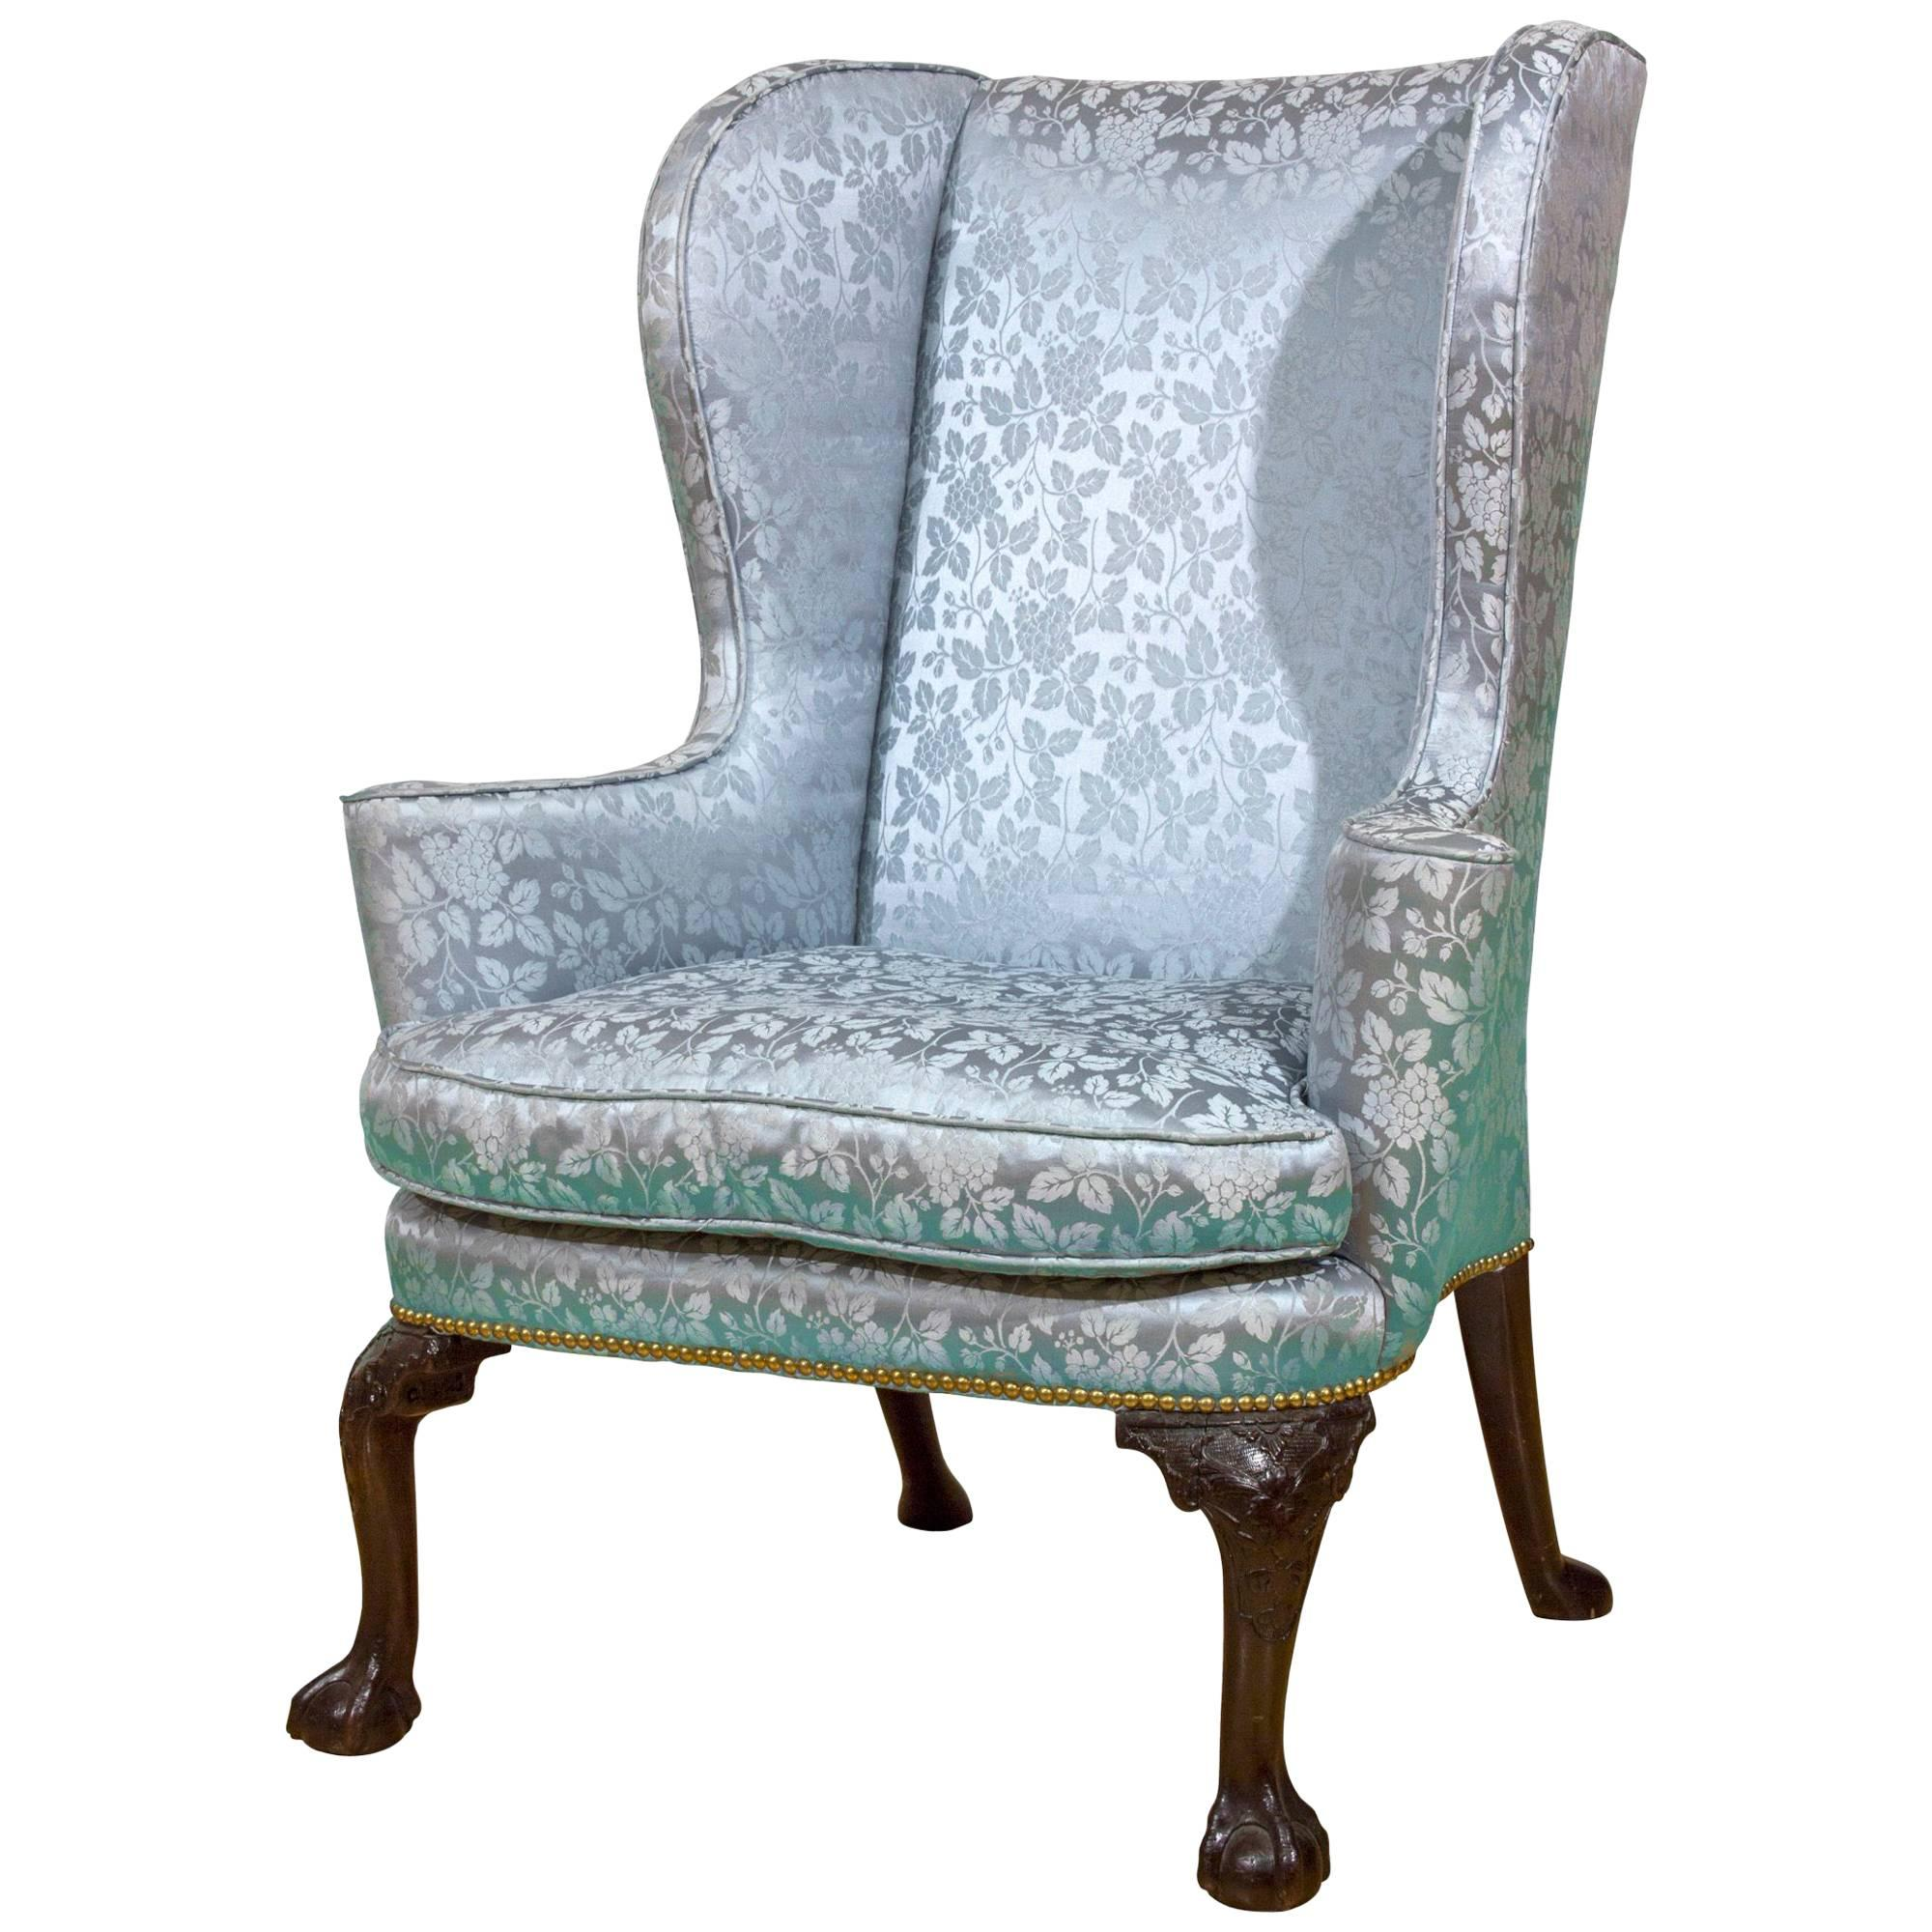 queen anne wing chair high seat for carved walnut english circa 1710 sale at george ii with knees claw ball feet